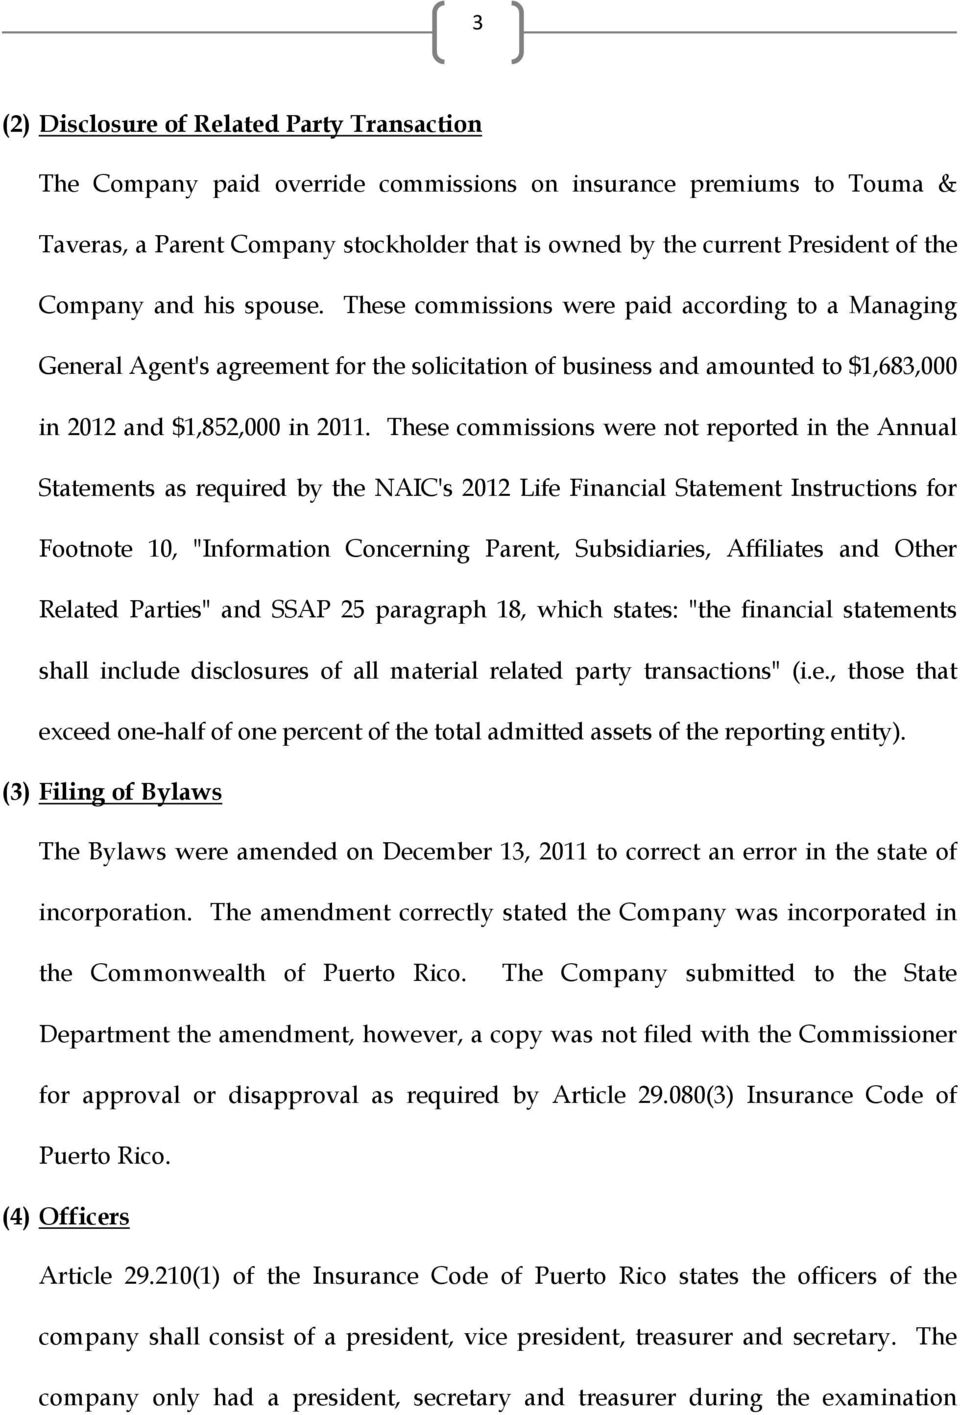 "These commissions were not reported in the Annual Statements as required by the NAIC's 2012 Life Financial Statement Instructions for Footnote 10, ""Information Concerning Parent, Subsidiaries,"